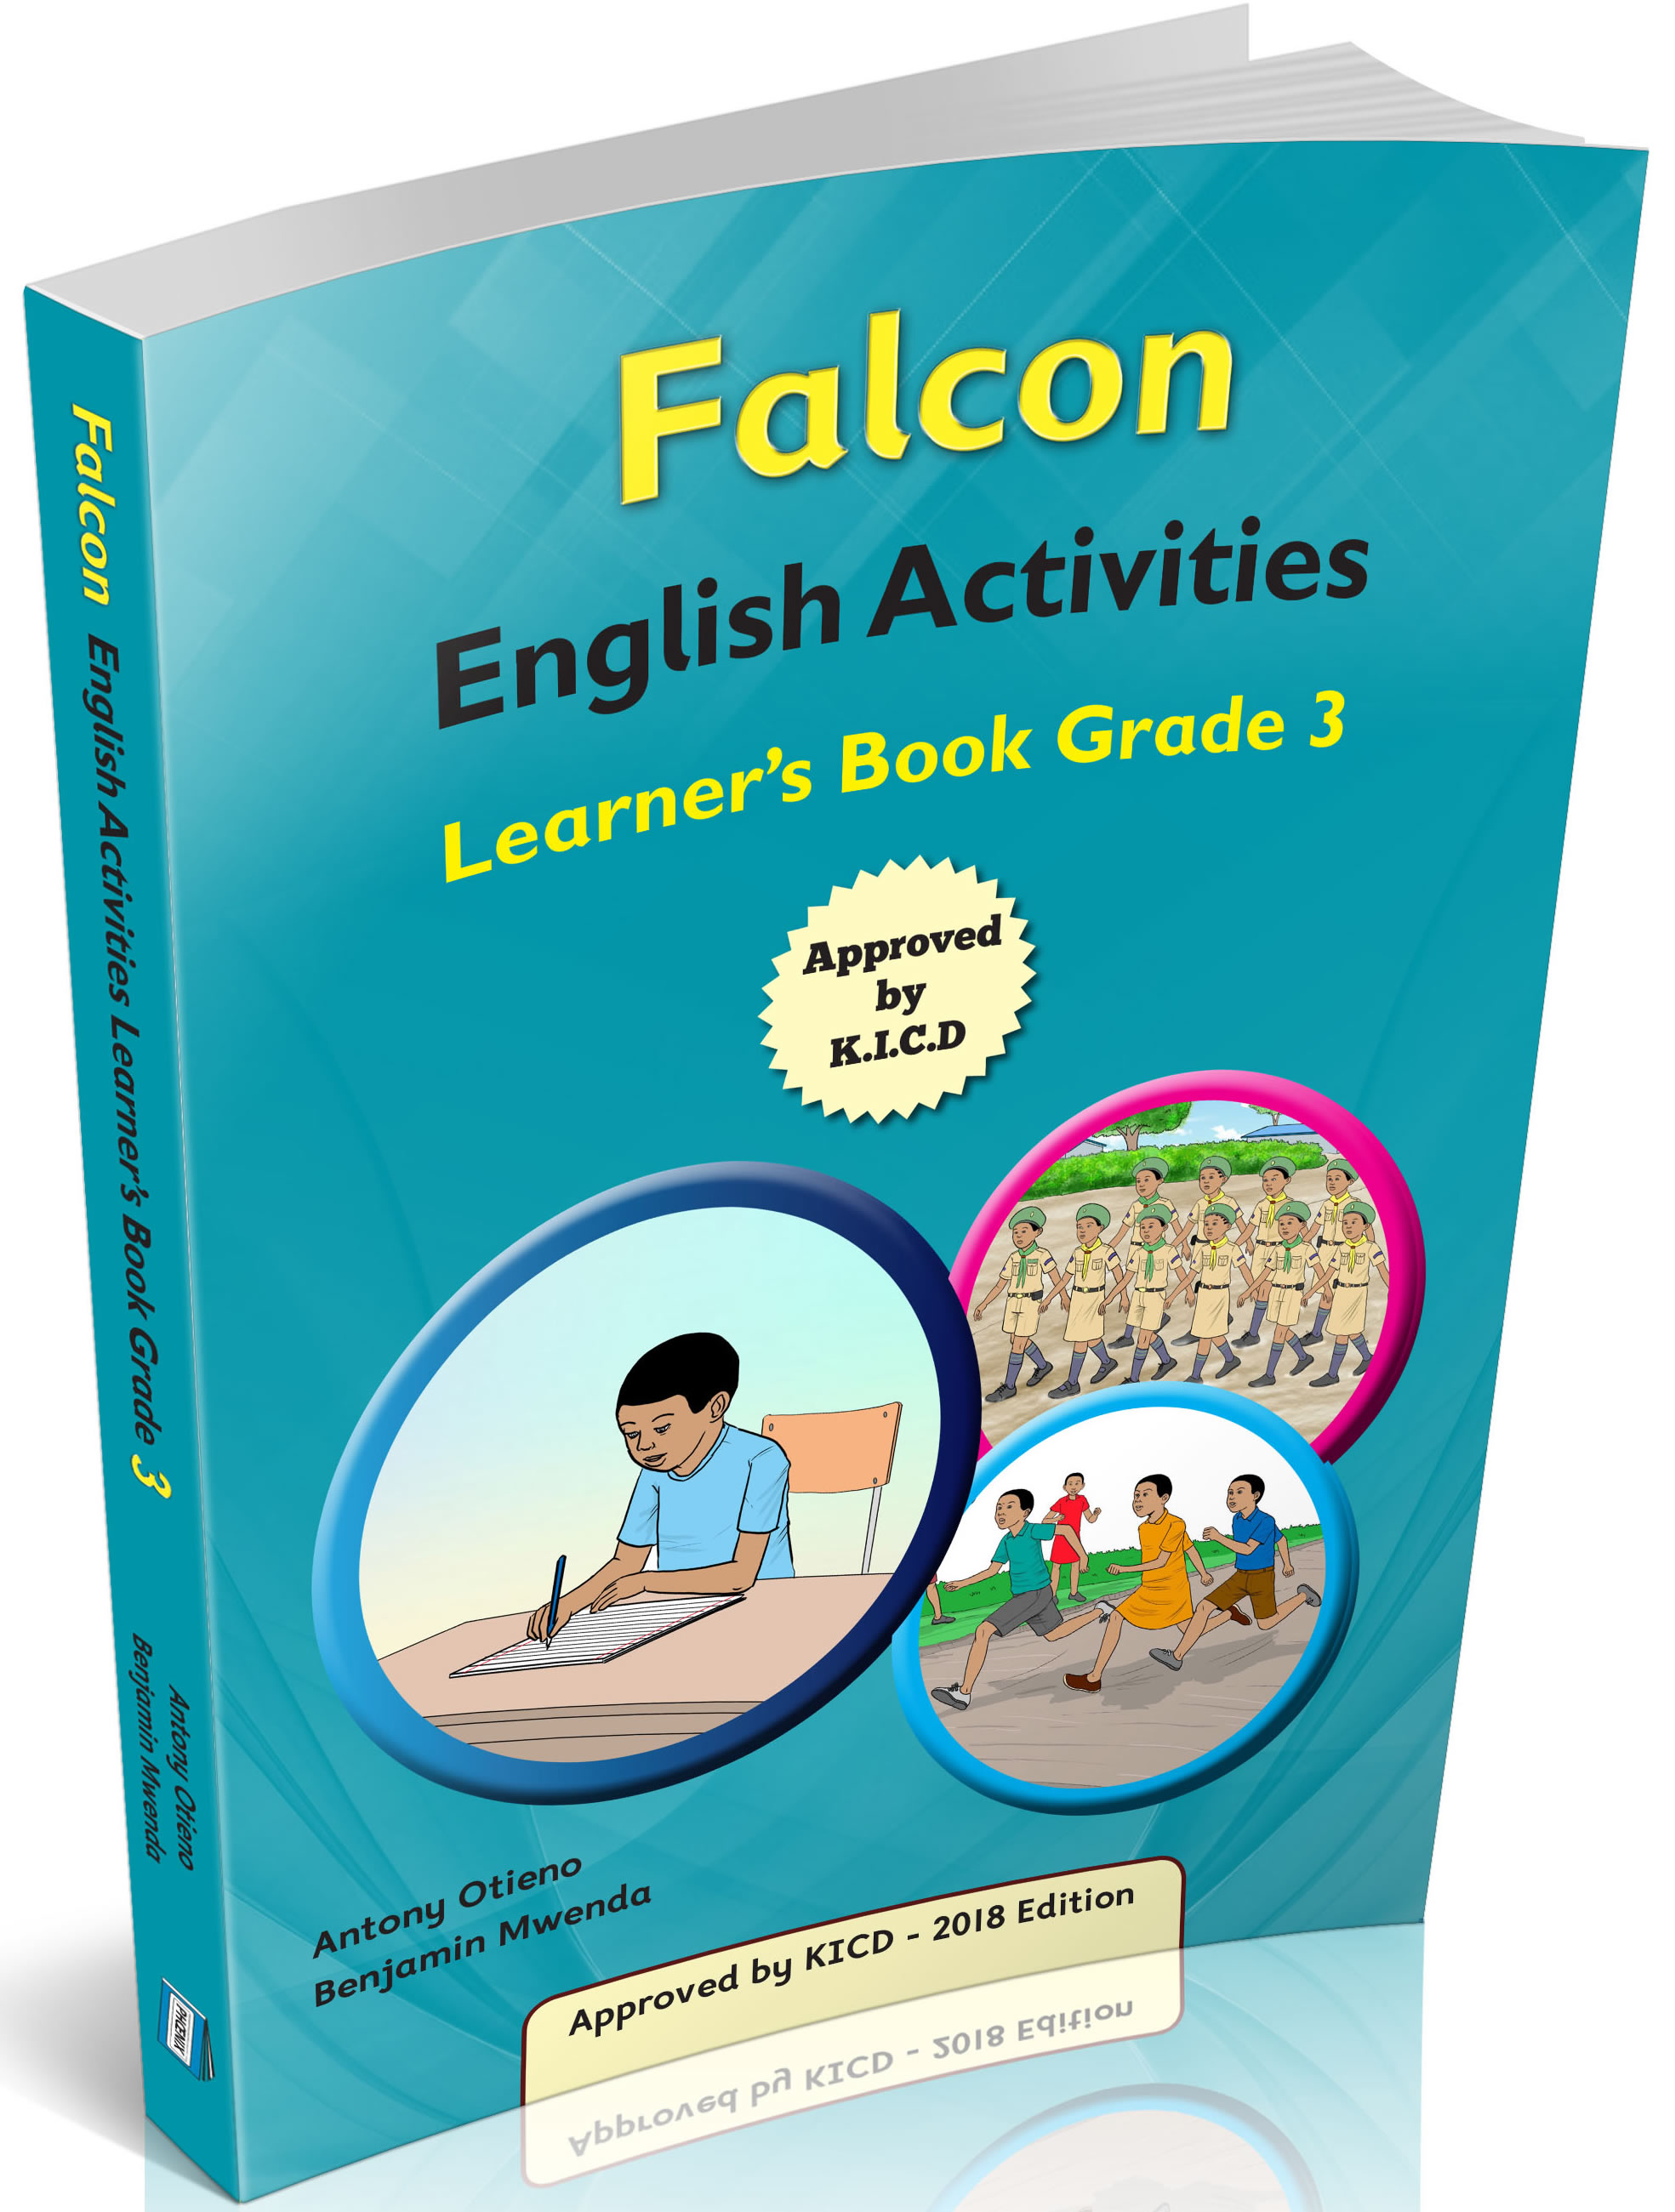 Falcon English Activities Grade 3